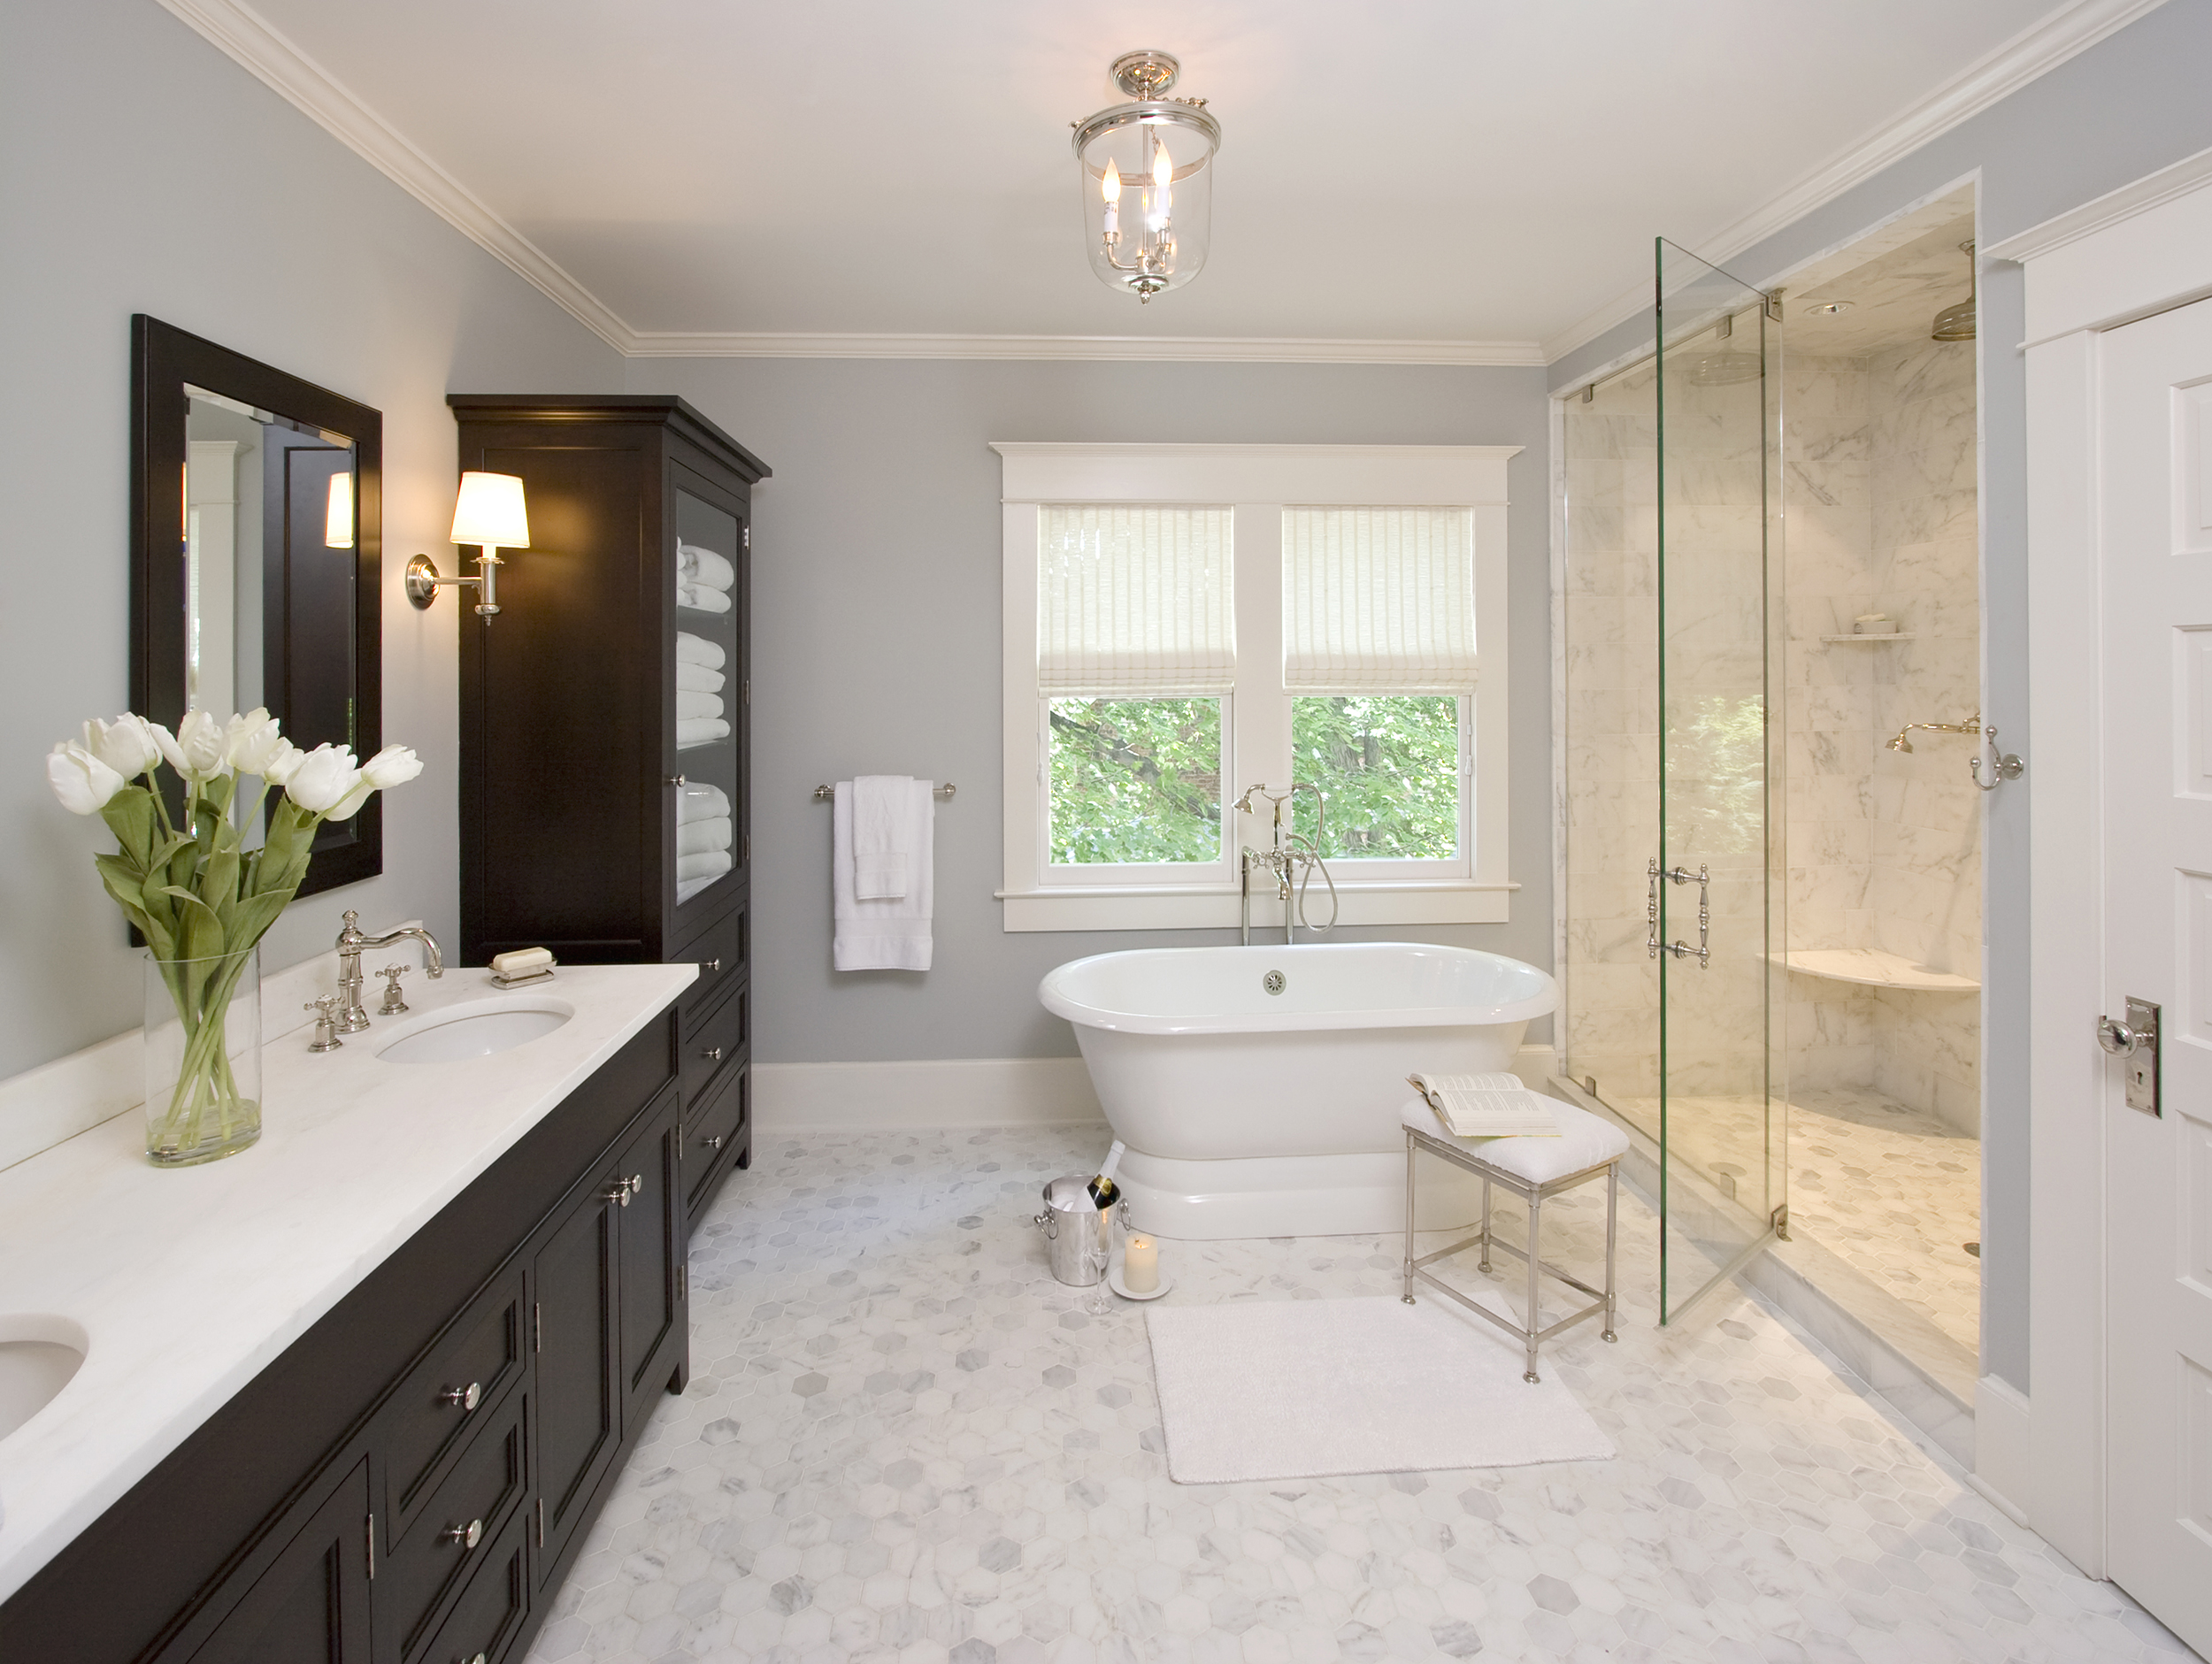 Master Bathroom is a Houzz.com favorite with over 120K saves and everyone asking what color is that on the wall!